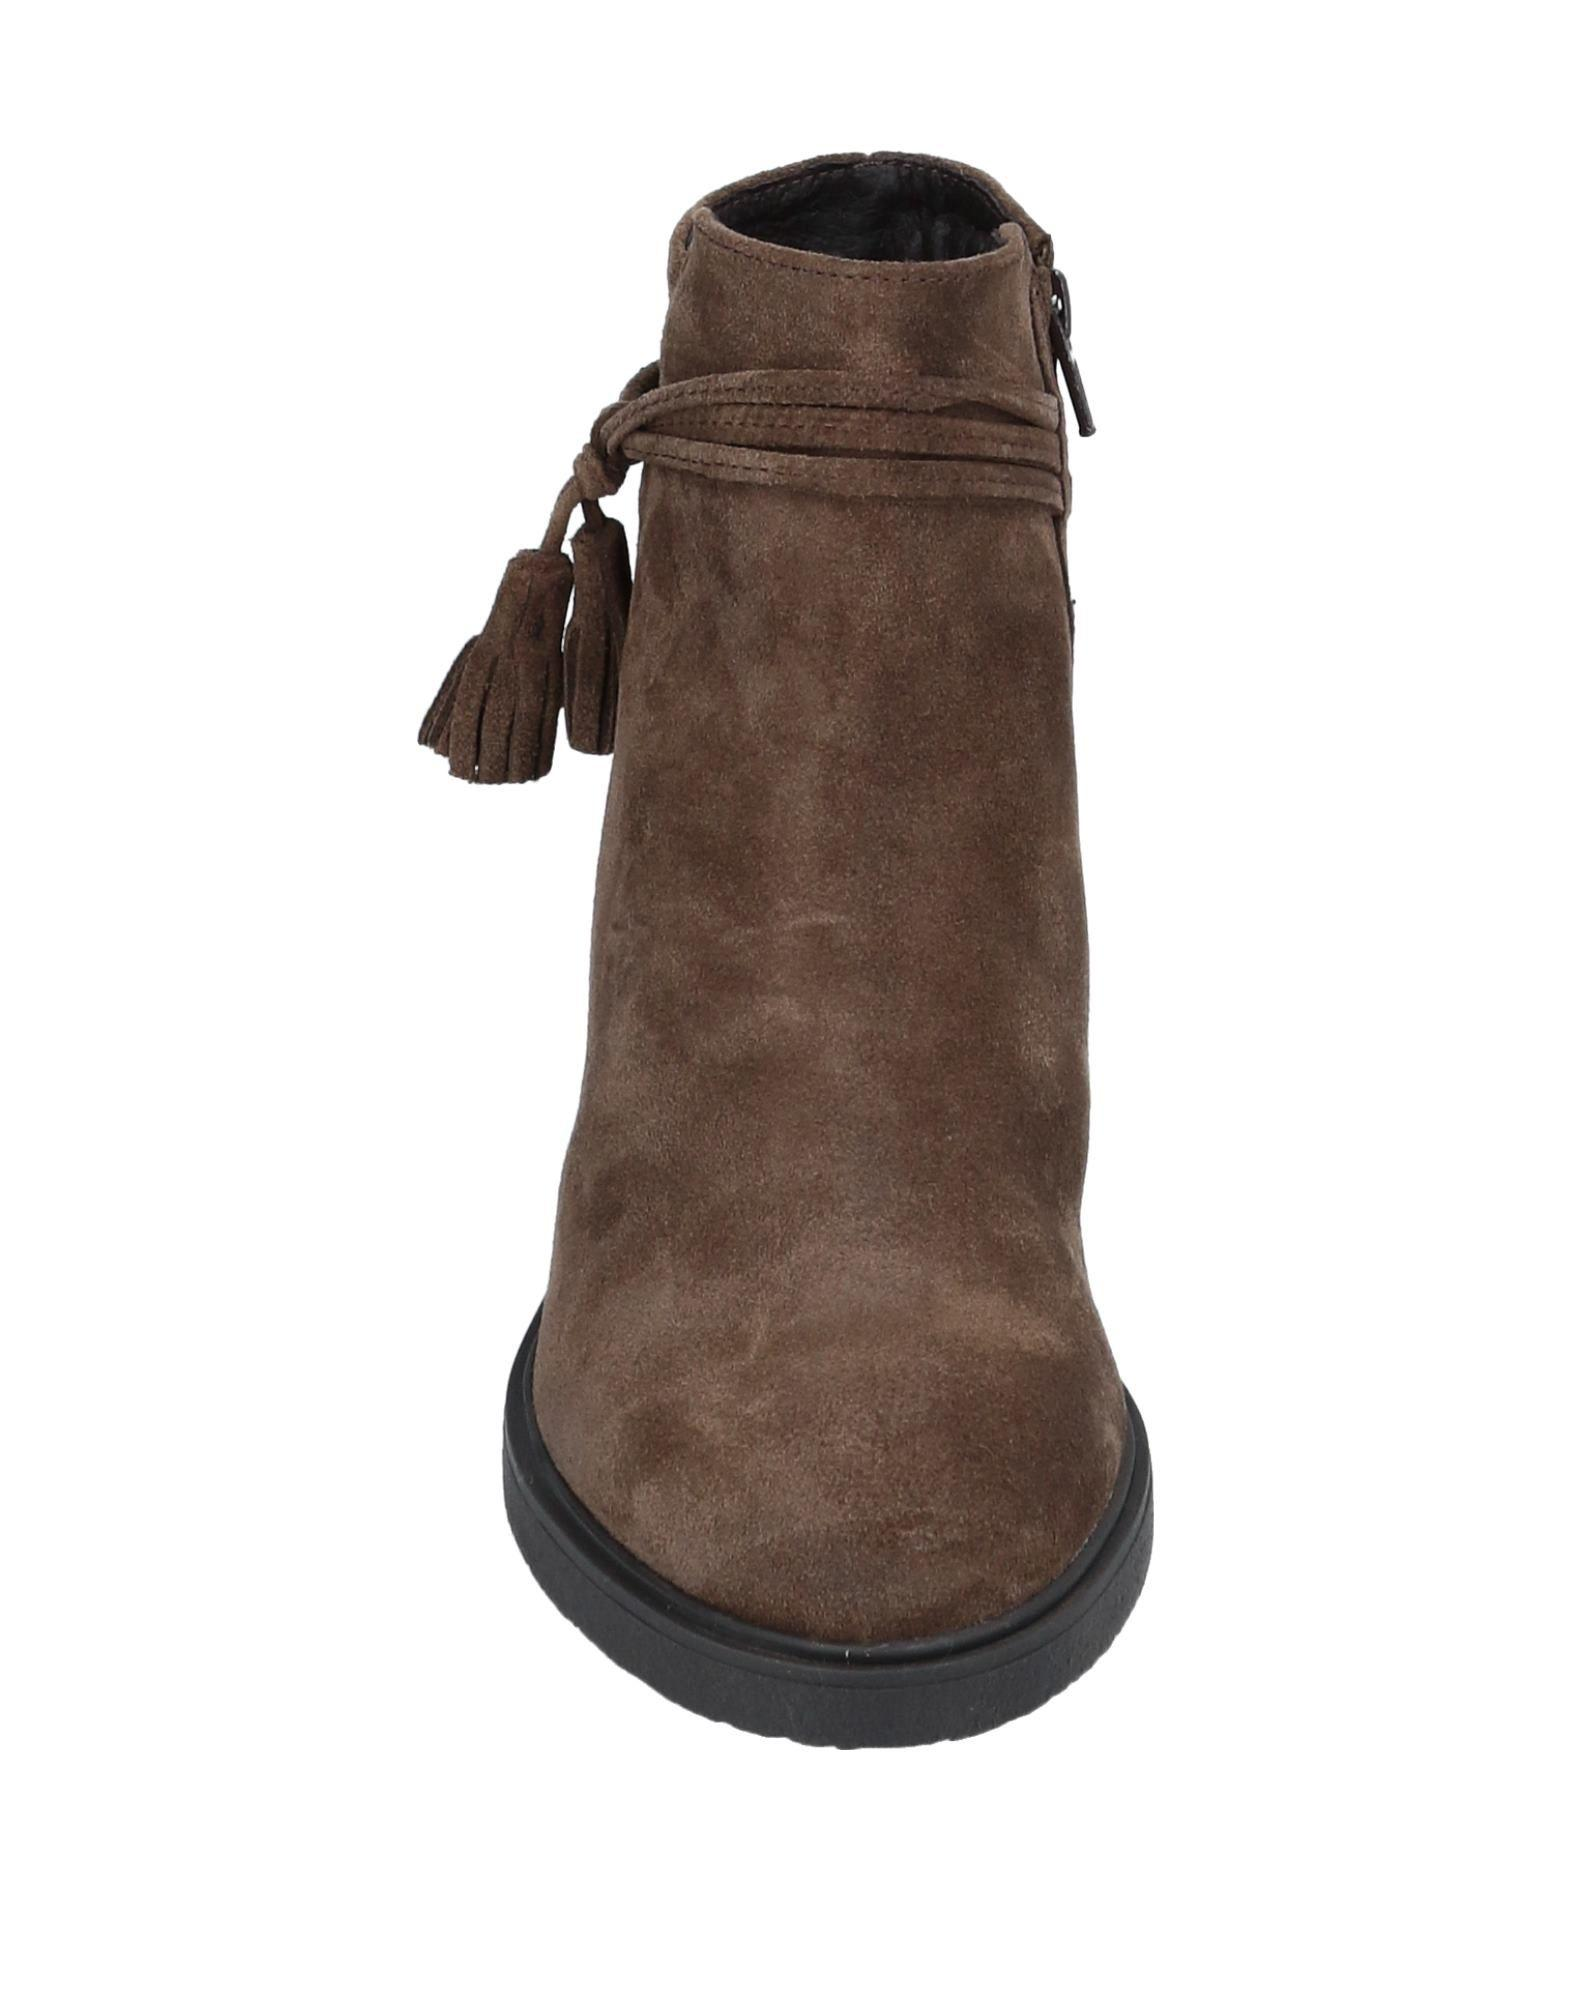 CafeNoir Suede Ankle Boots in Khaki (Brown)